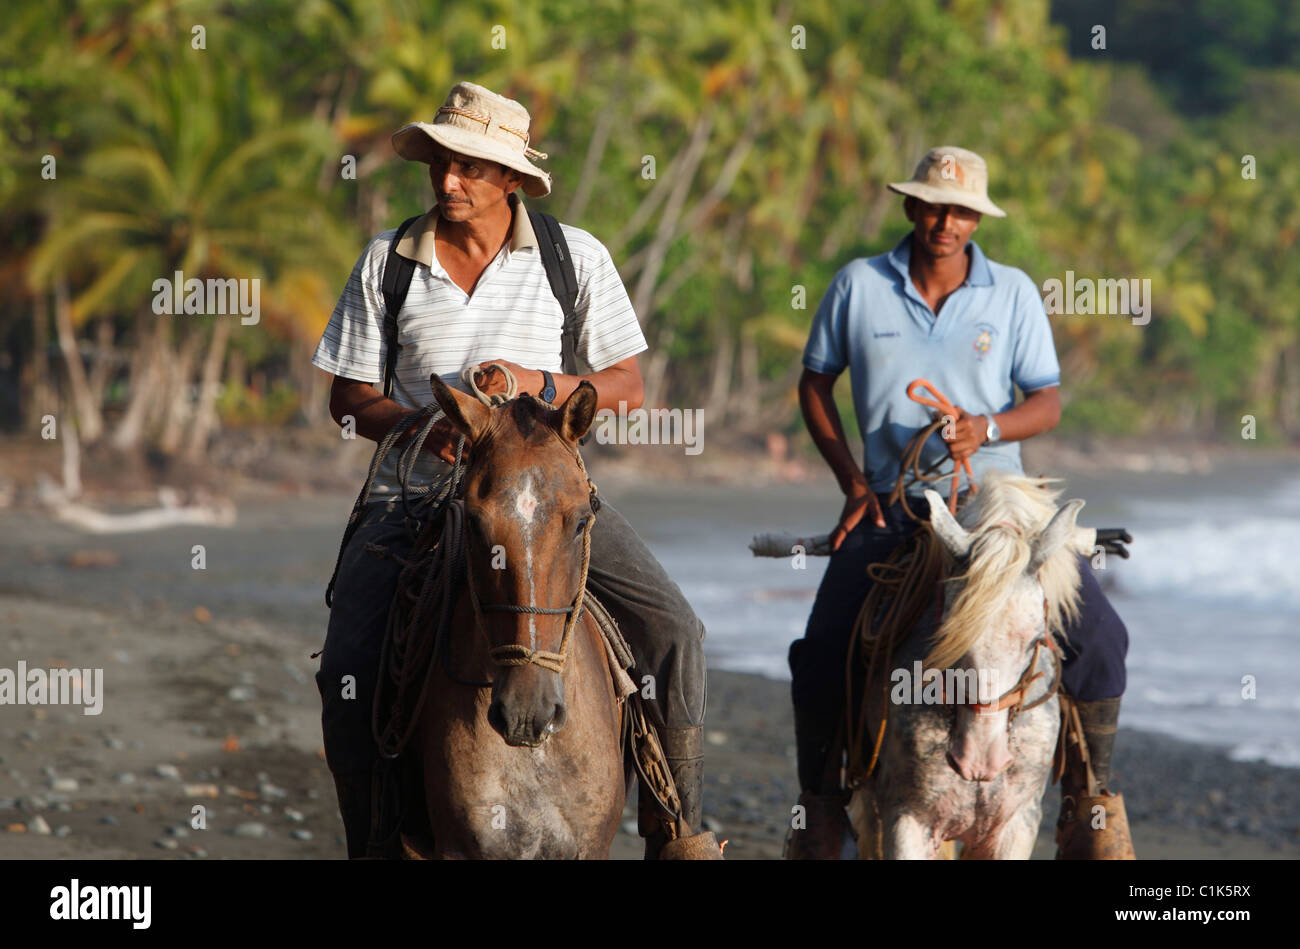 Costa Rican men ride horses on the beach in Punta Banco, Costa Rica - Stock Image